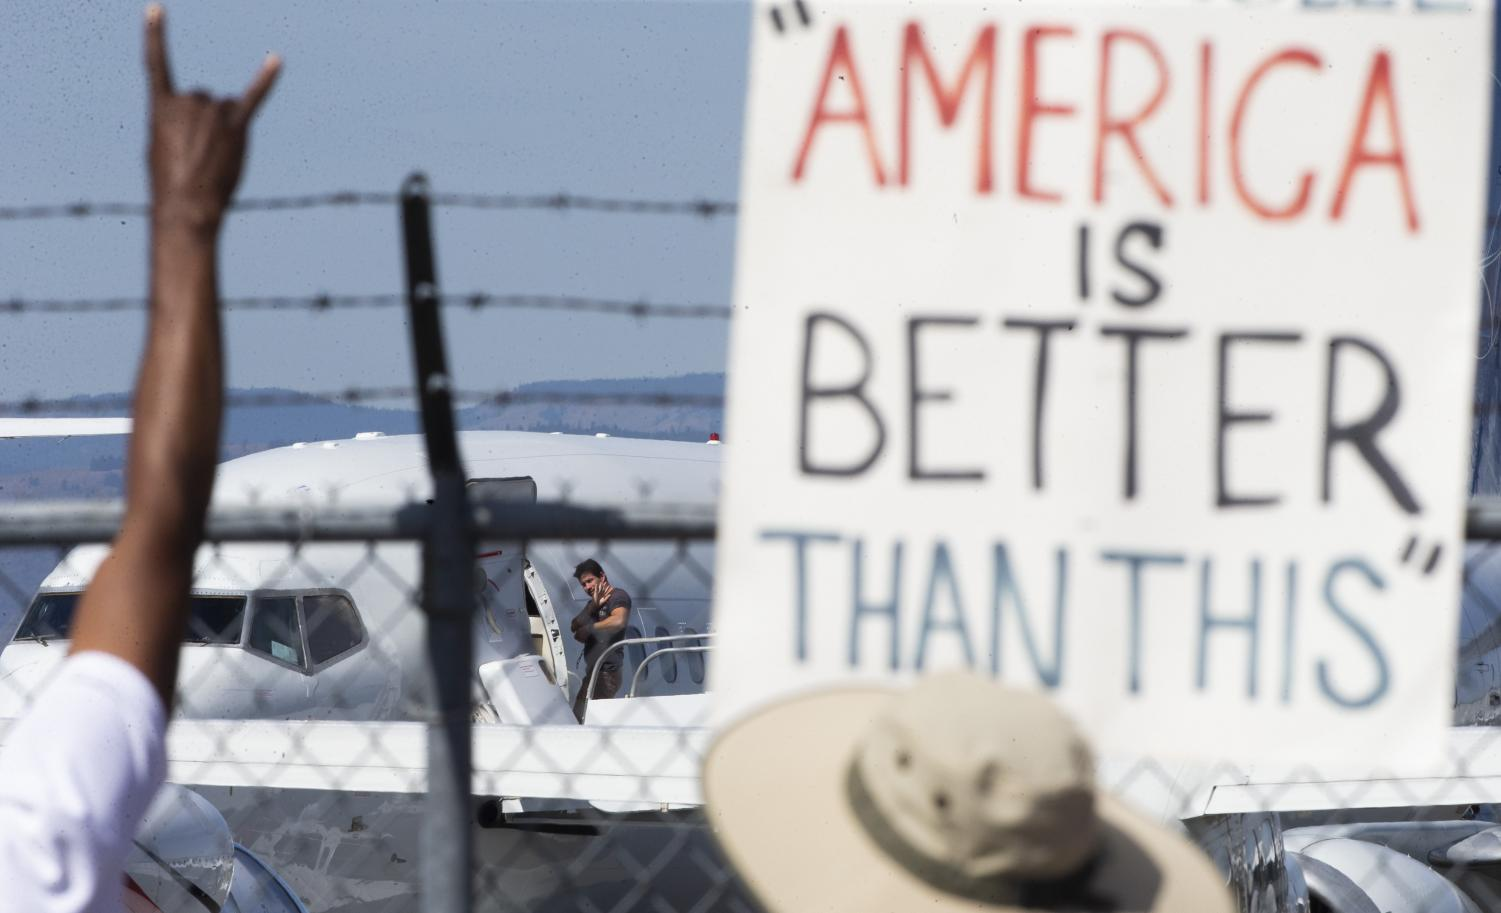 An ICE detainee waves at people chanting and holding signs along the fence while boarding a Swift Air flight on Tuesday, Aug. 20, 2019 at McCormick Air Center in Yakima, Wash. (Evan Abell / Yakima Herald-Republic via AP)/Yakima Herald-Republic via AP)